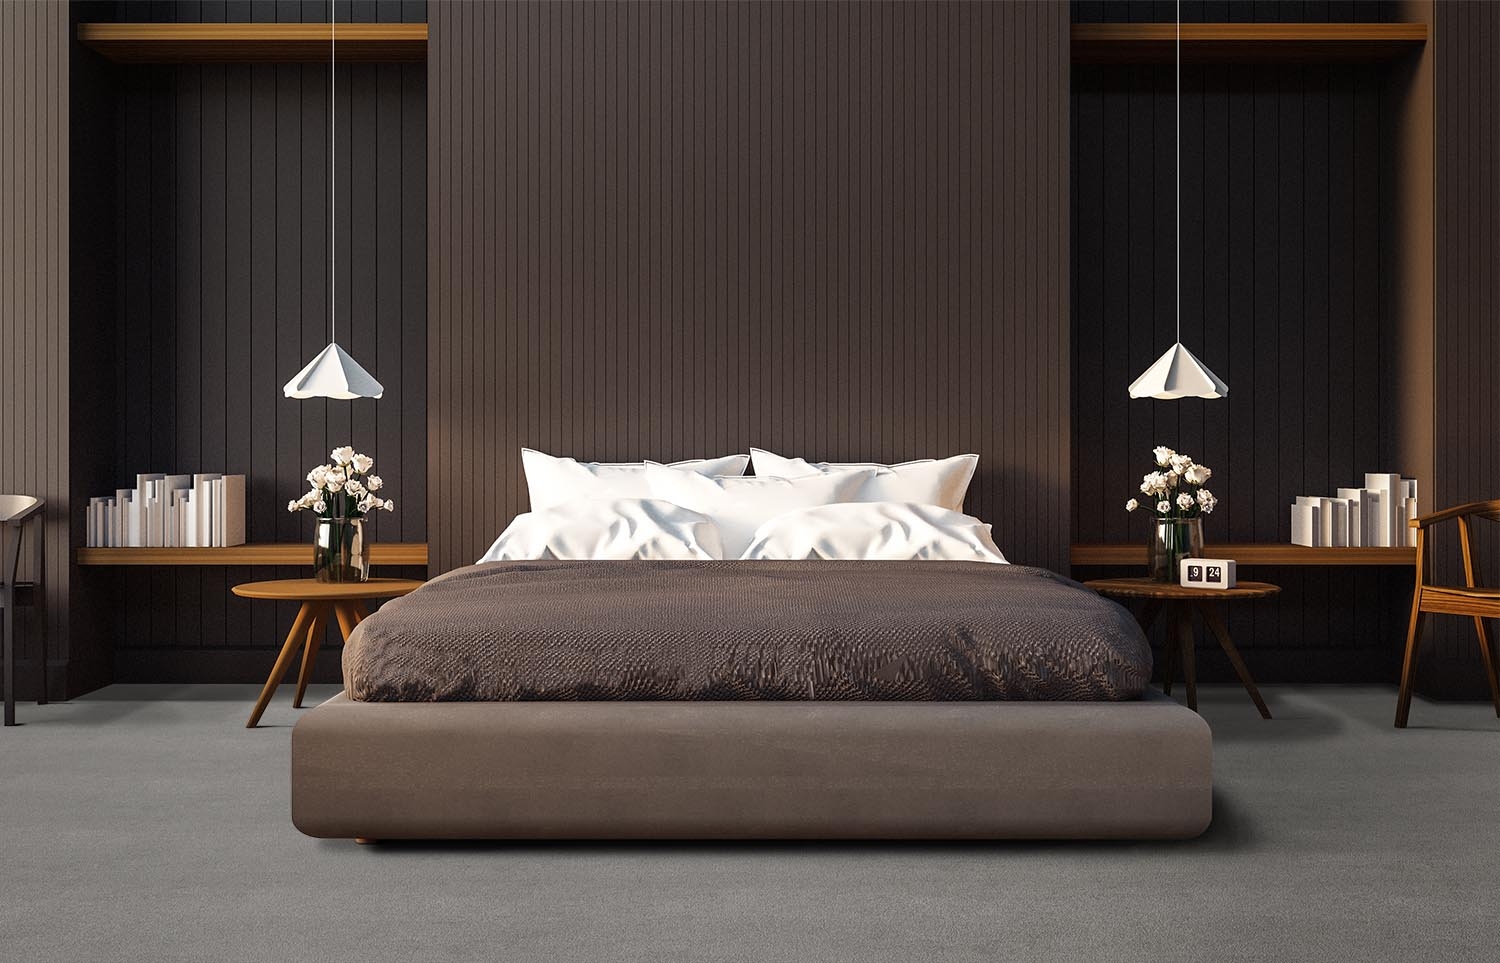 Softology - S301 - Ash contemporary bedroom